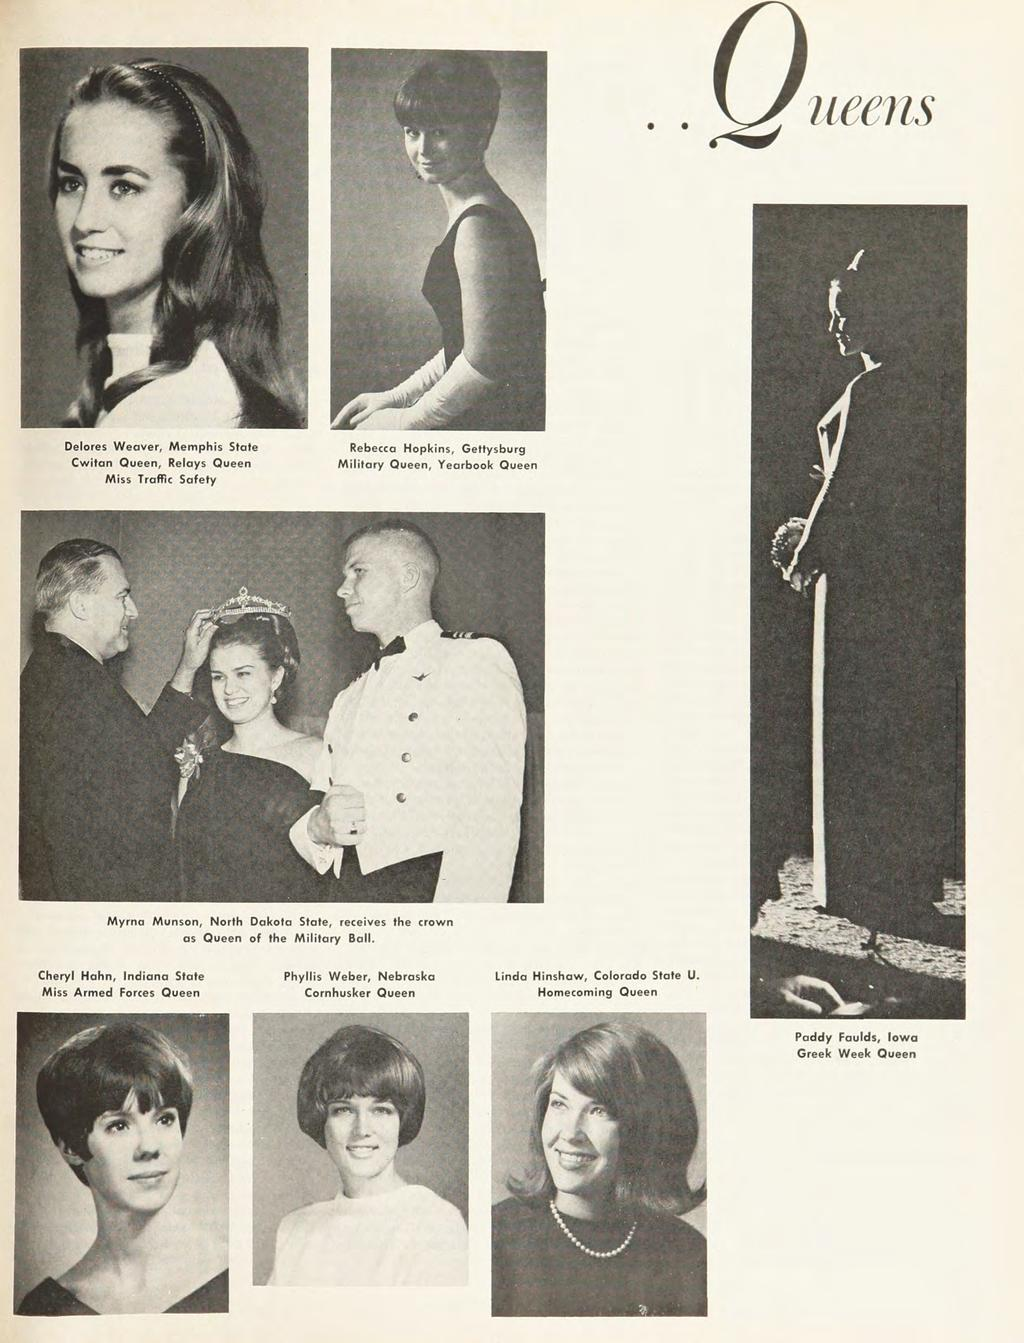 ueens Delores Weaver, Memphis State Cwitan Queen, Relays Queen Miss Traffic Safety Rebecca Hopkins, Gettysburg Military Queen, Yearbook Queen Myrna Munson, North Dakota State, receives the crown as